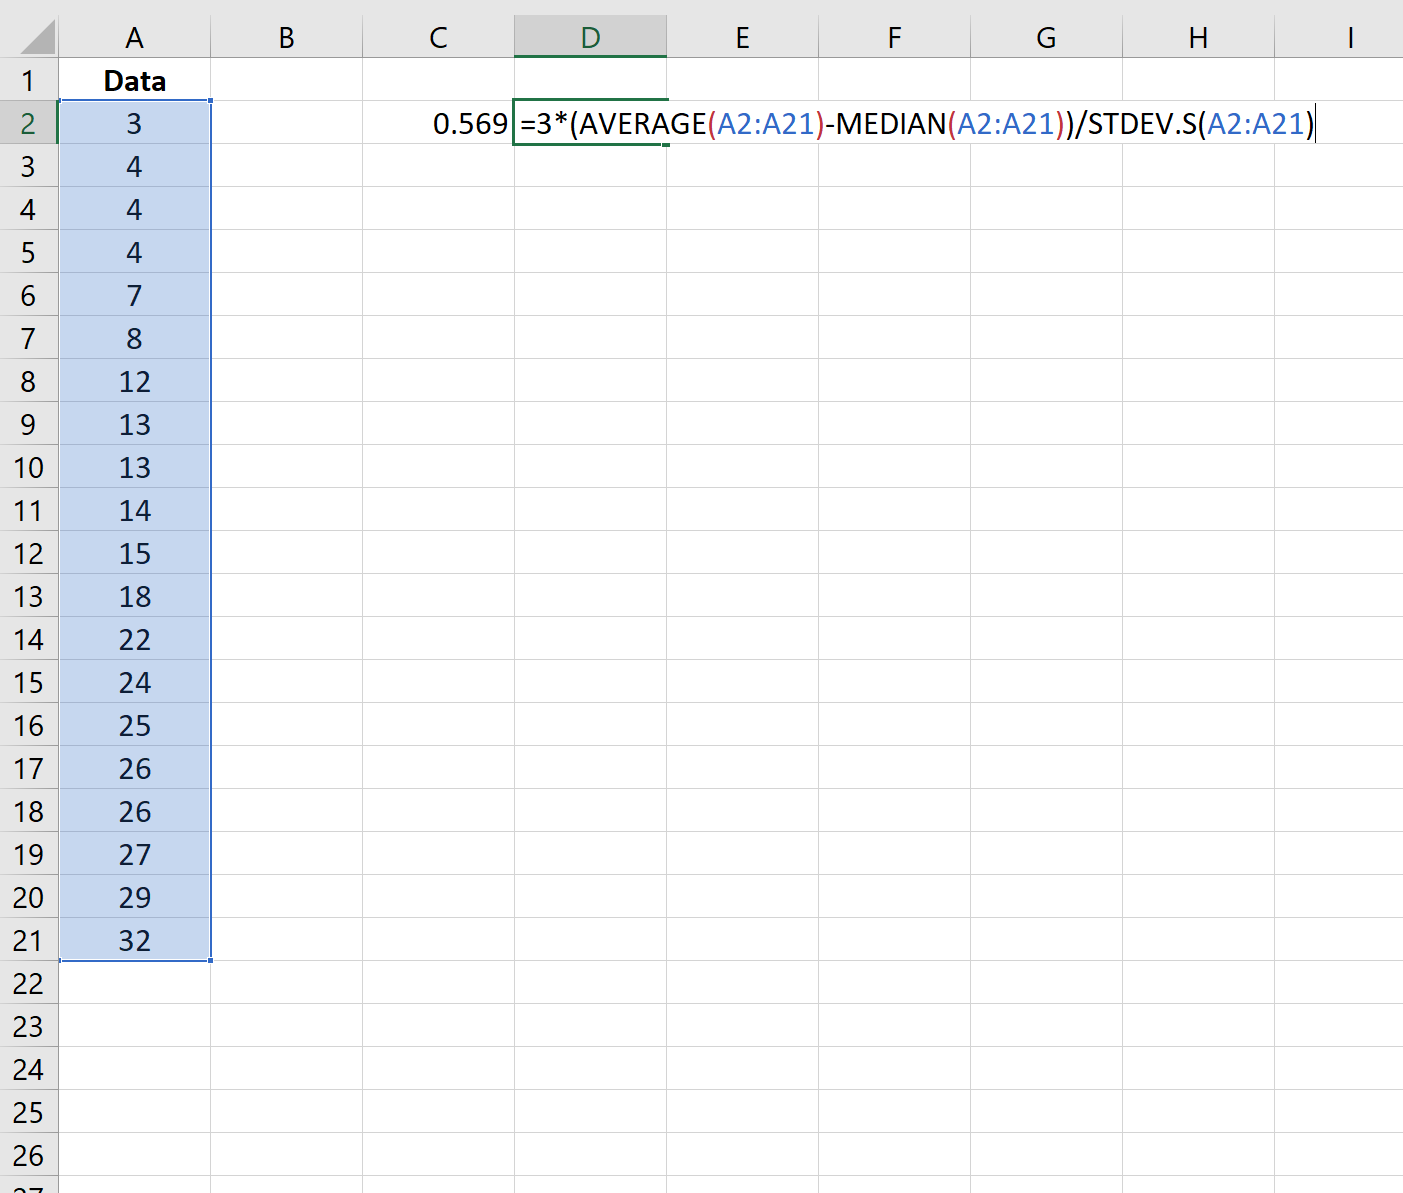 Pearson's coefficient of skewness in Excel using the median